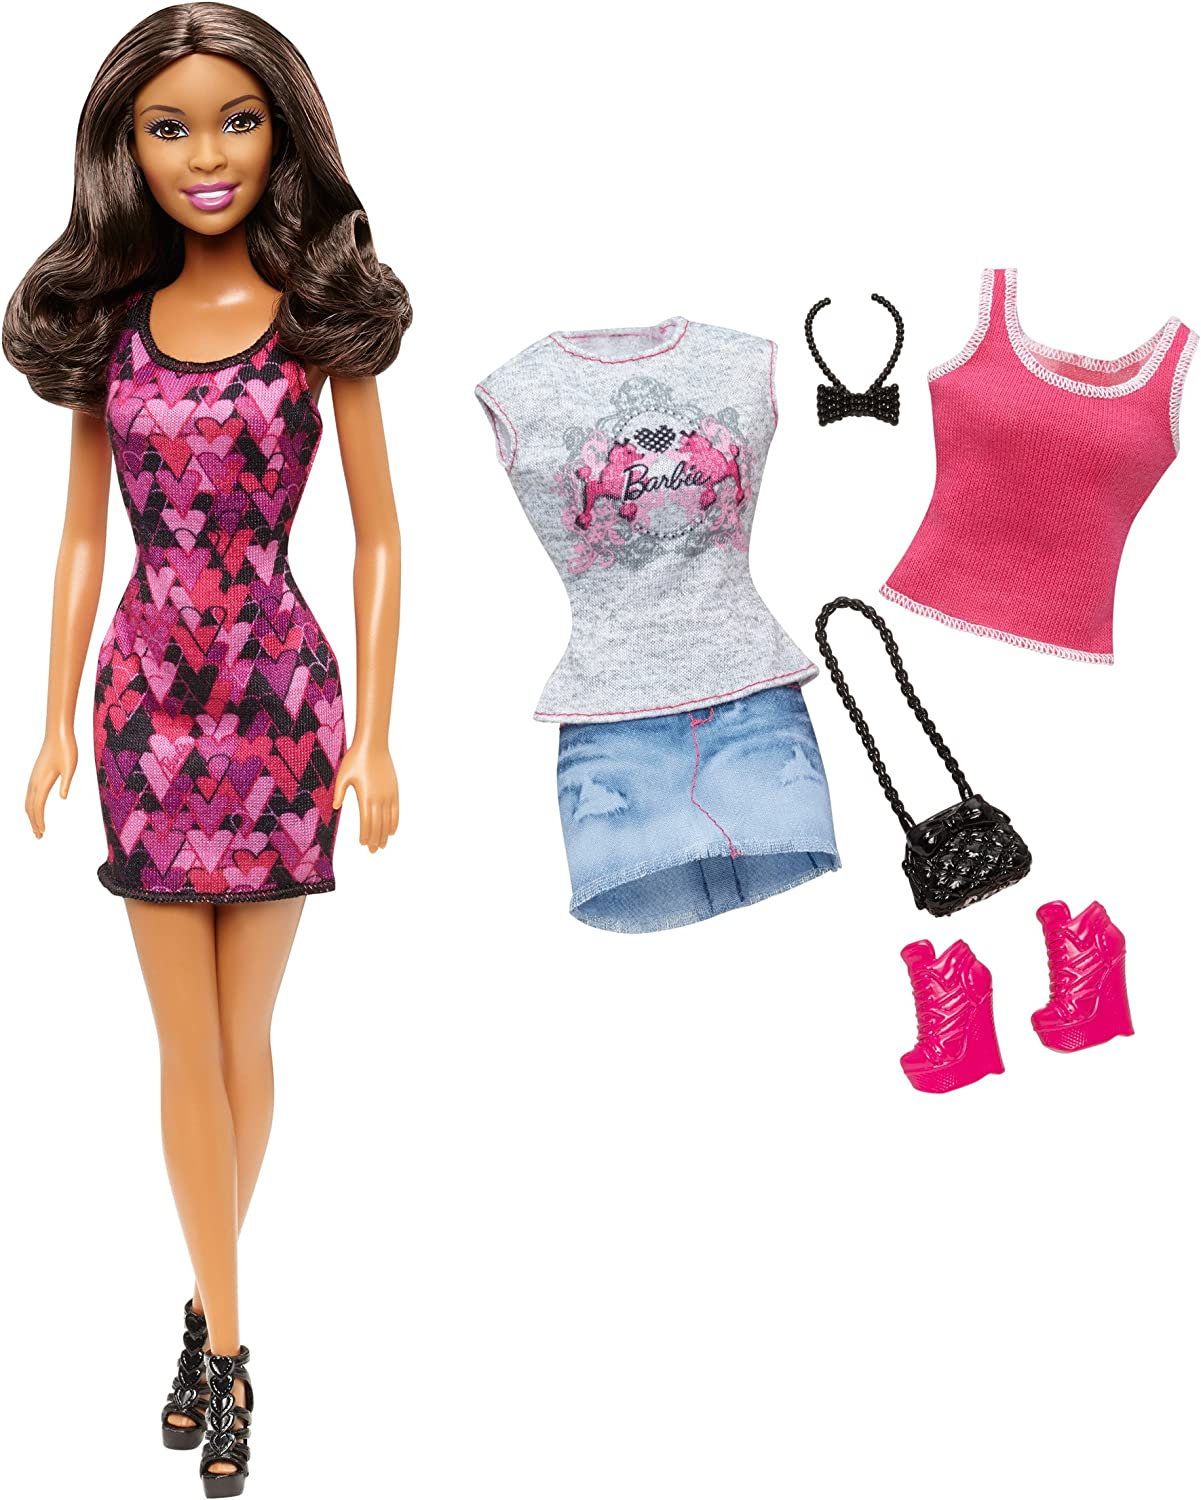 Barbie AfricanAmerican Doll and Fashion Giftset